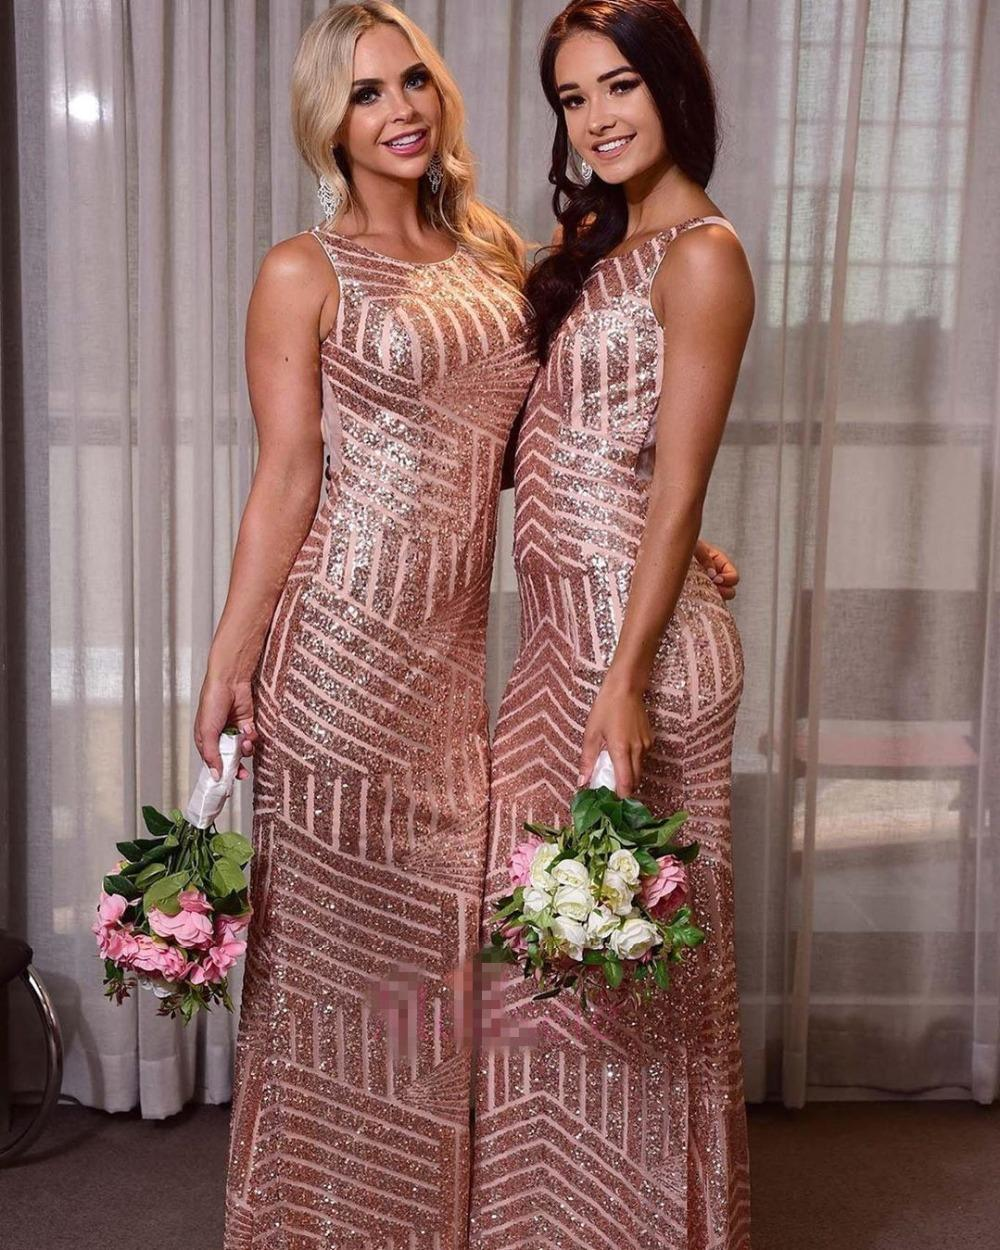 Bling Bling Sequins Bridesmaid Dresses Sccop Neck Mermaid Maid of Honor Dress for Wedding Party